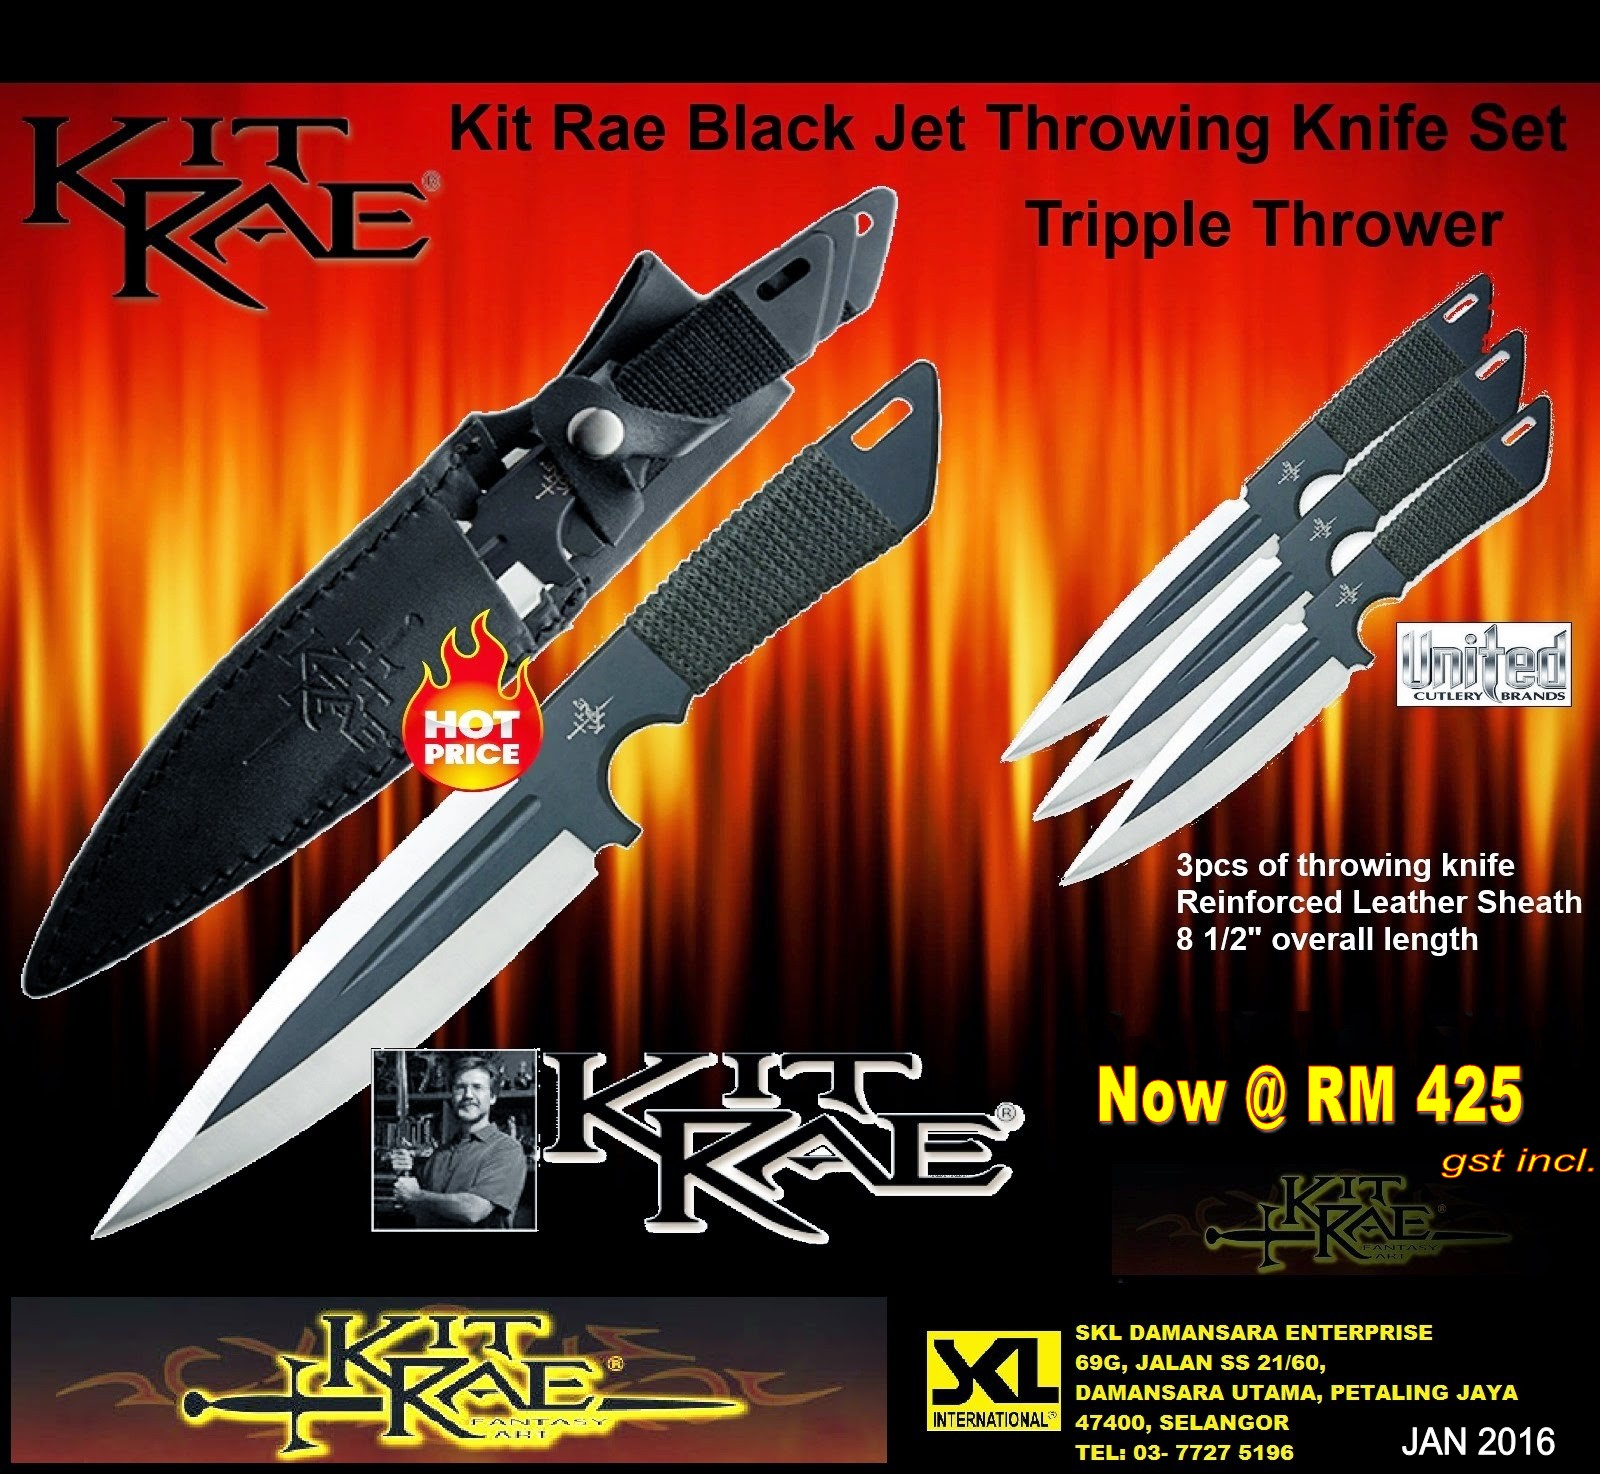 Kitrae Black Jet Throwing Knife Triple Set now at RM 425.00 only!